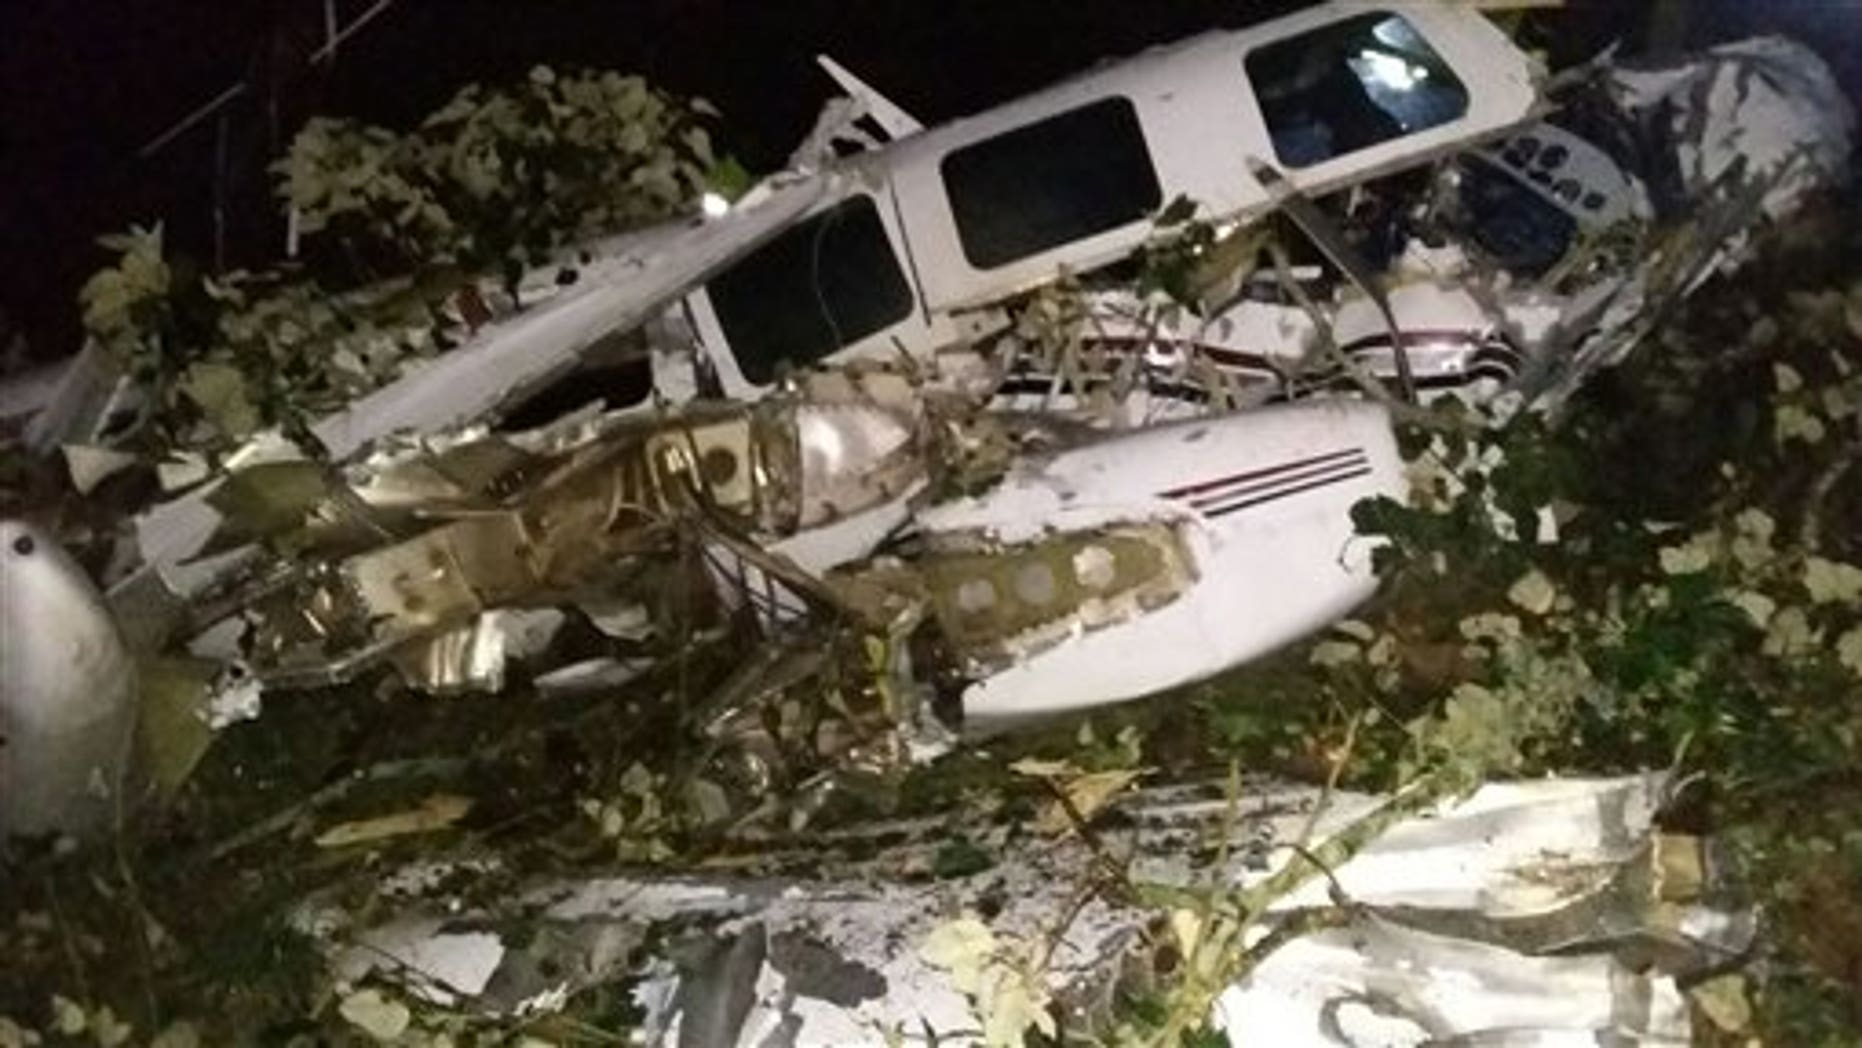 This photo released by the San Predro de los Milagros Fire Department shows the wreckage of a small plane assigned to the crew of a film starring Tom Cruise, that crashed, in a rural place of San Pedro de los Milagros, Colombia, Friday, Sept. 11, 2015. The country's civilian aviation authority said the twin-engine Aerostar crashed Friday after taking off from a small colonial town near Medellin, killing two people, including a Los Angeles-based film pilot, and seriously injuring a third. (San Pedro de los Milagros Fire Department via AP)